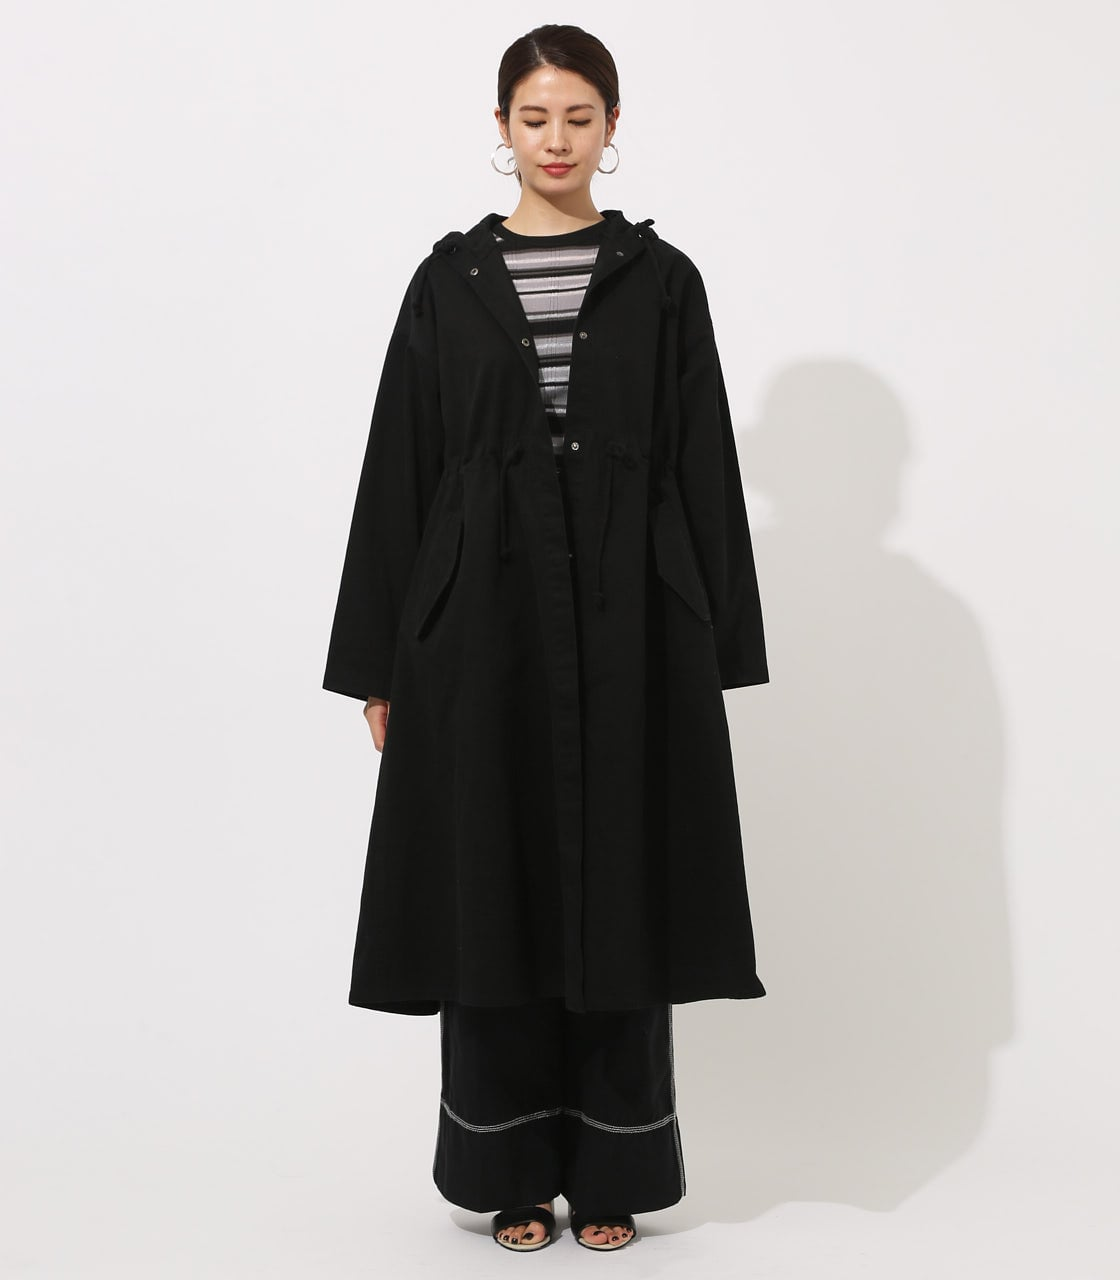 【AZUL BY MOUSSY】LOOSE MODS COAT 【MOOK49掲載 90044】 詳細画像 BLK 5